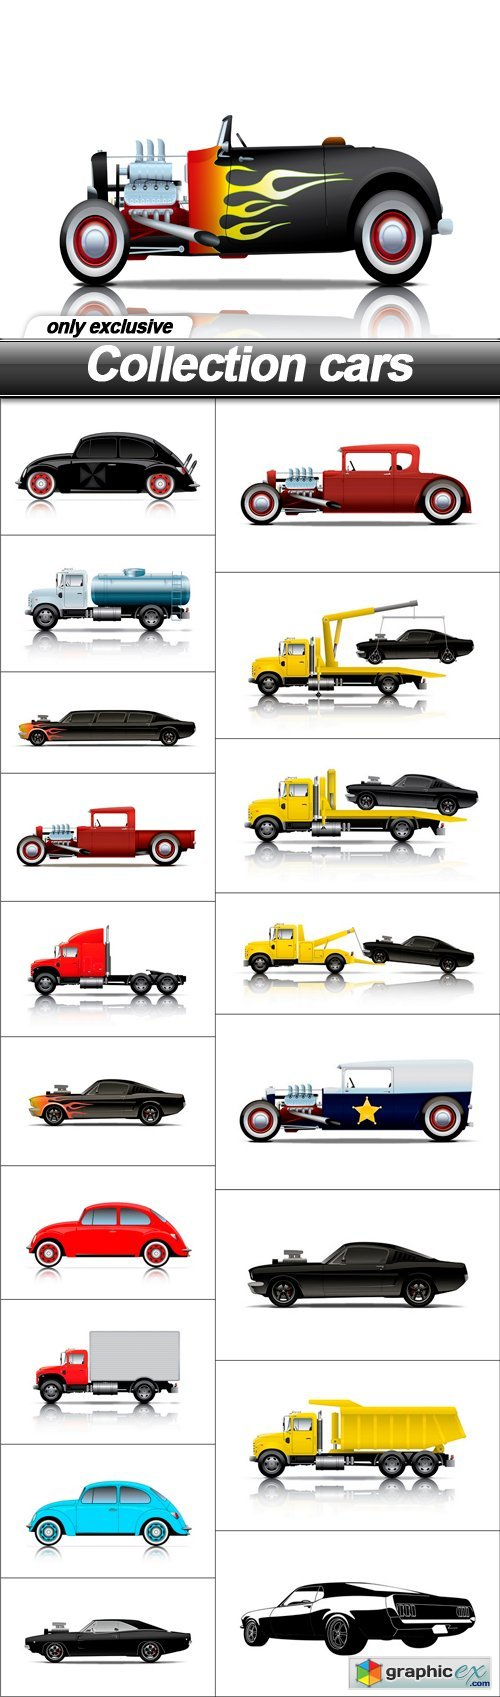 Collection cars - 19 EPS